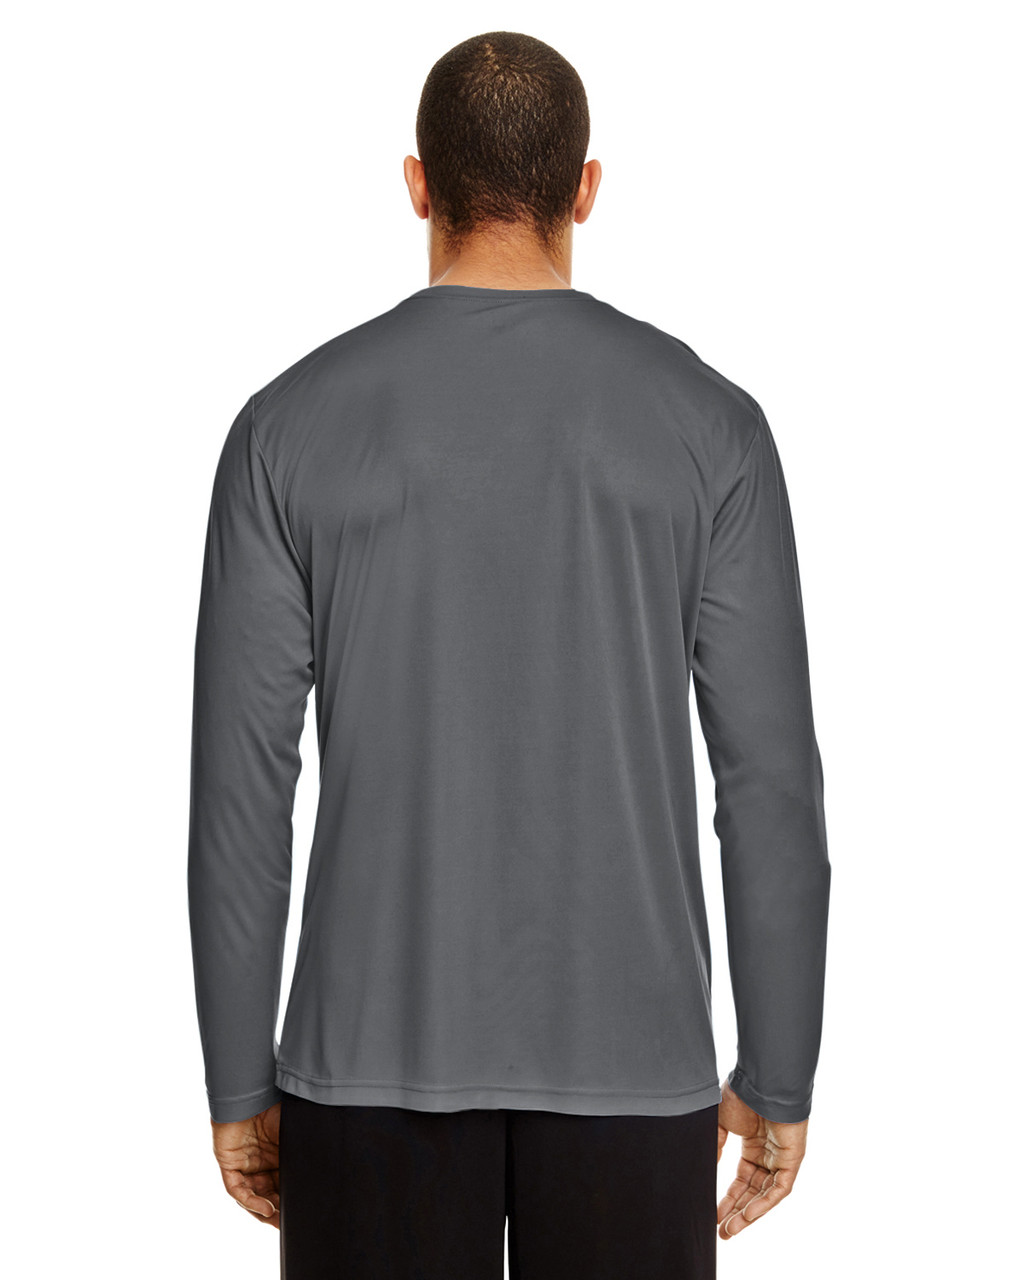 Sport Graphite, Back - TT11L Team 365 Men's Zone Performance Long Sleeve T-Shirt | BlankClothing.ca